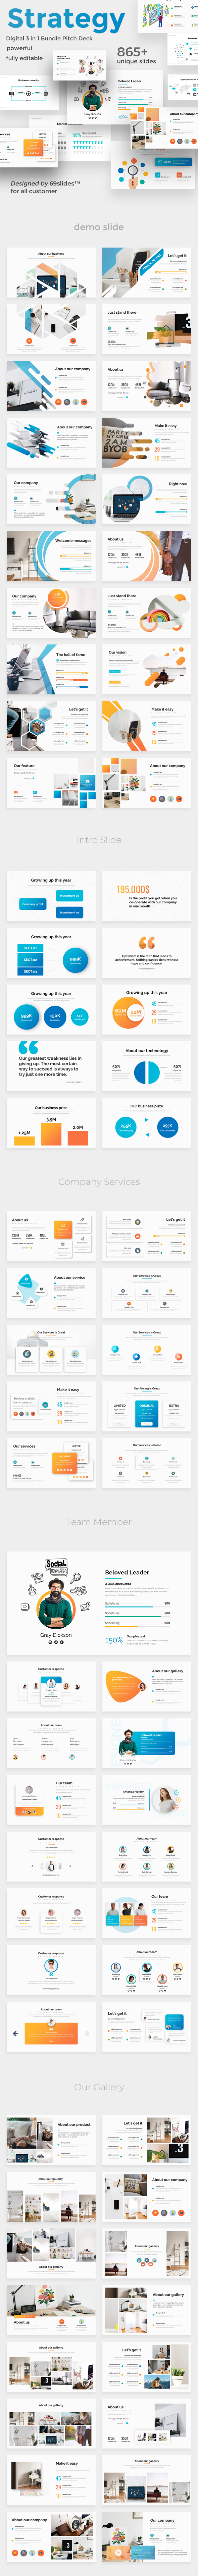 Digital Strategy 3 in 1 Pitch Deck Powerpoint Bundle Template - Business PowerPoint Templates